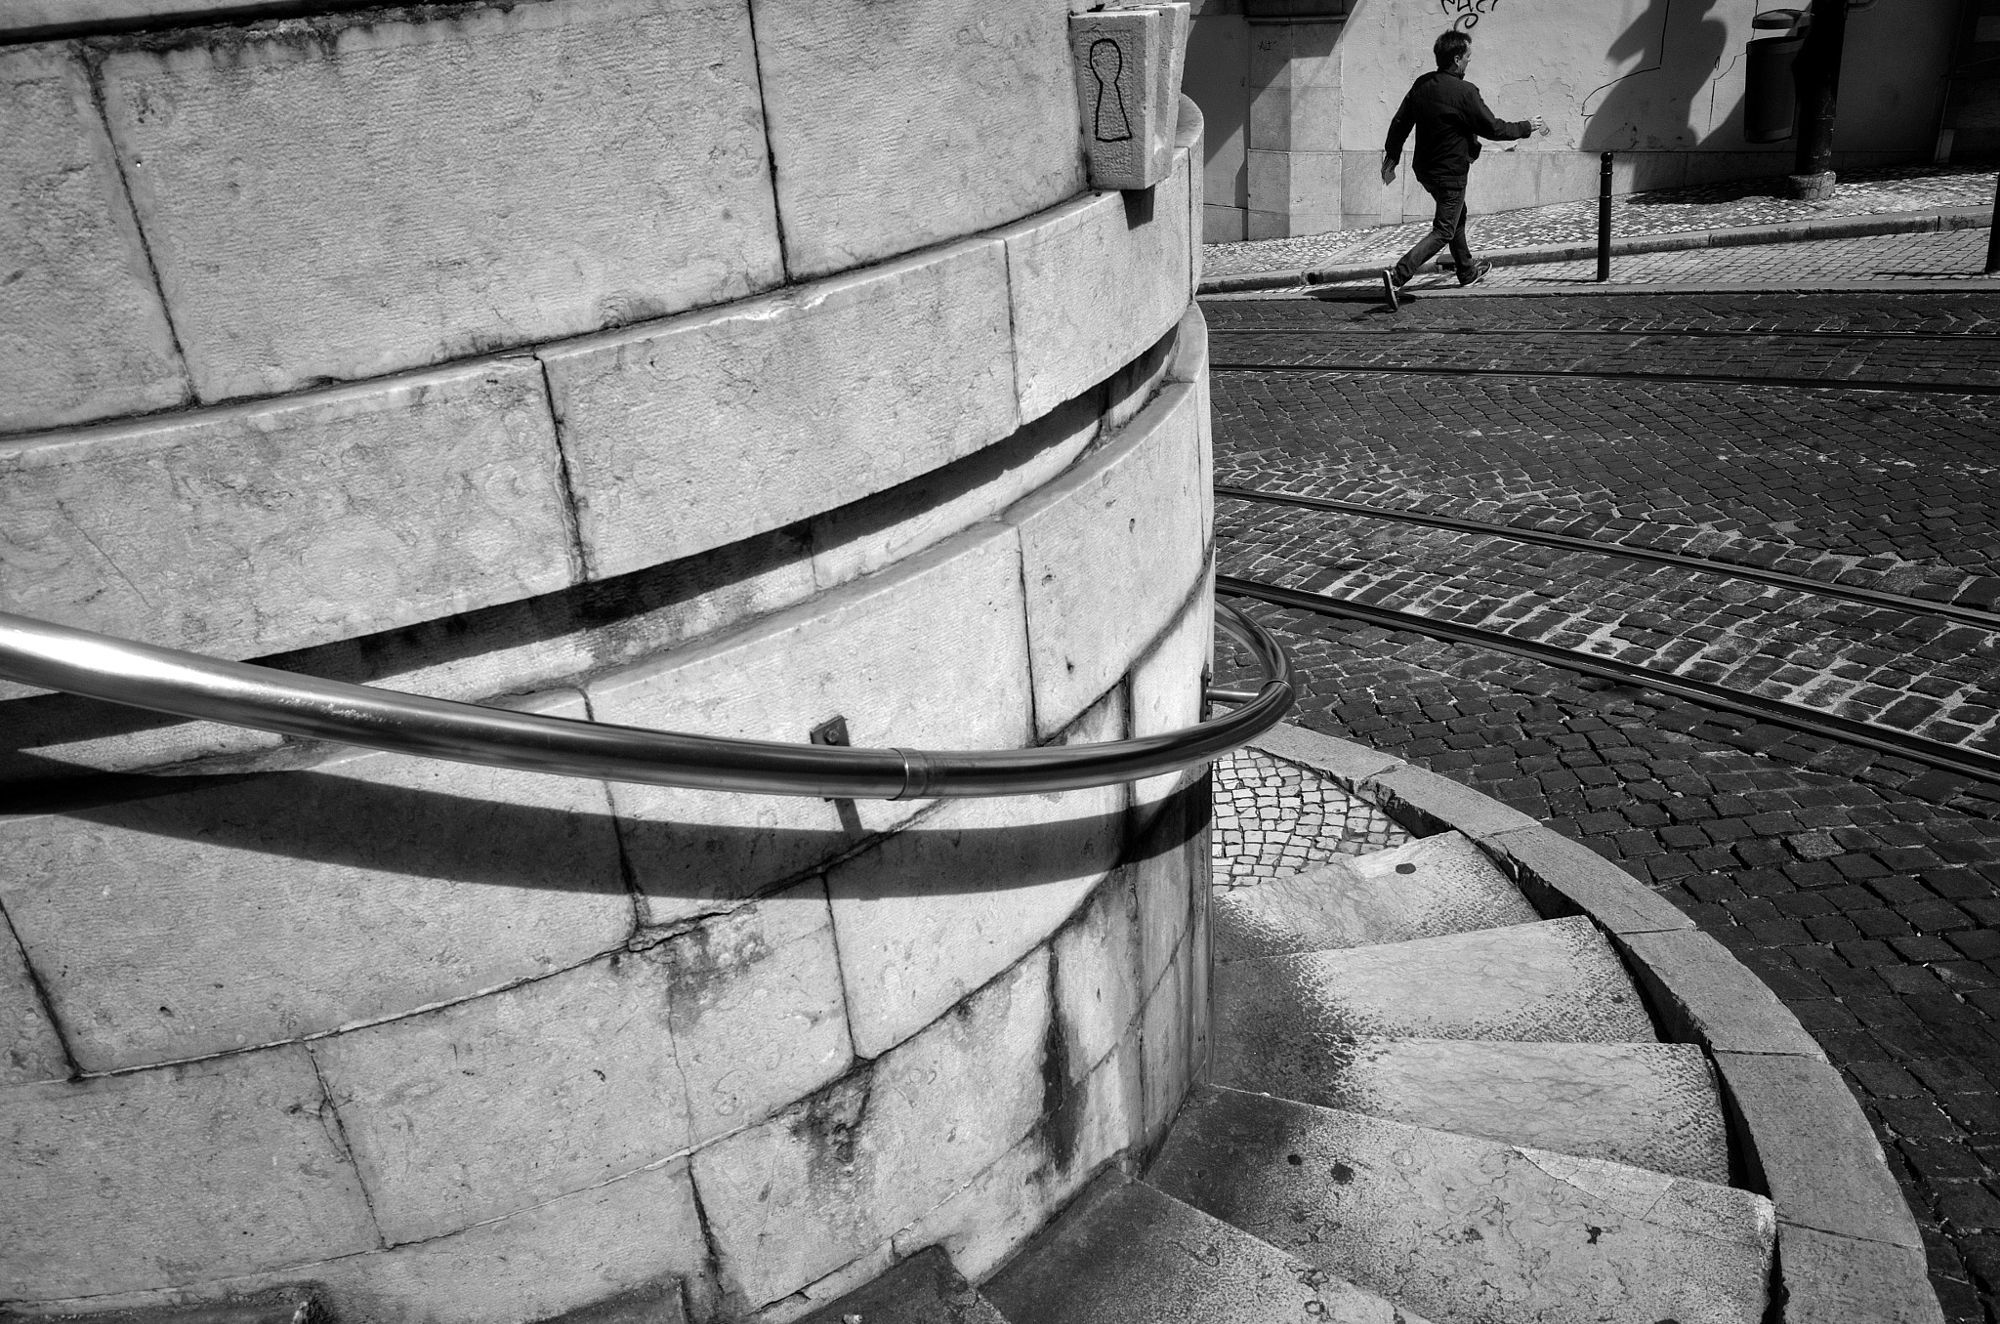 Street Photography : Steps by oalentejanonacidade https://t.co/WjR71LWuFo | #streets #photography #photos #500px https://t.co/ZfSYwOaAdo  #photography